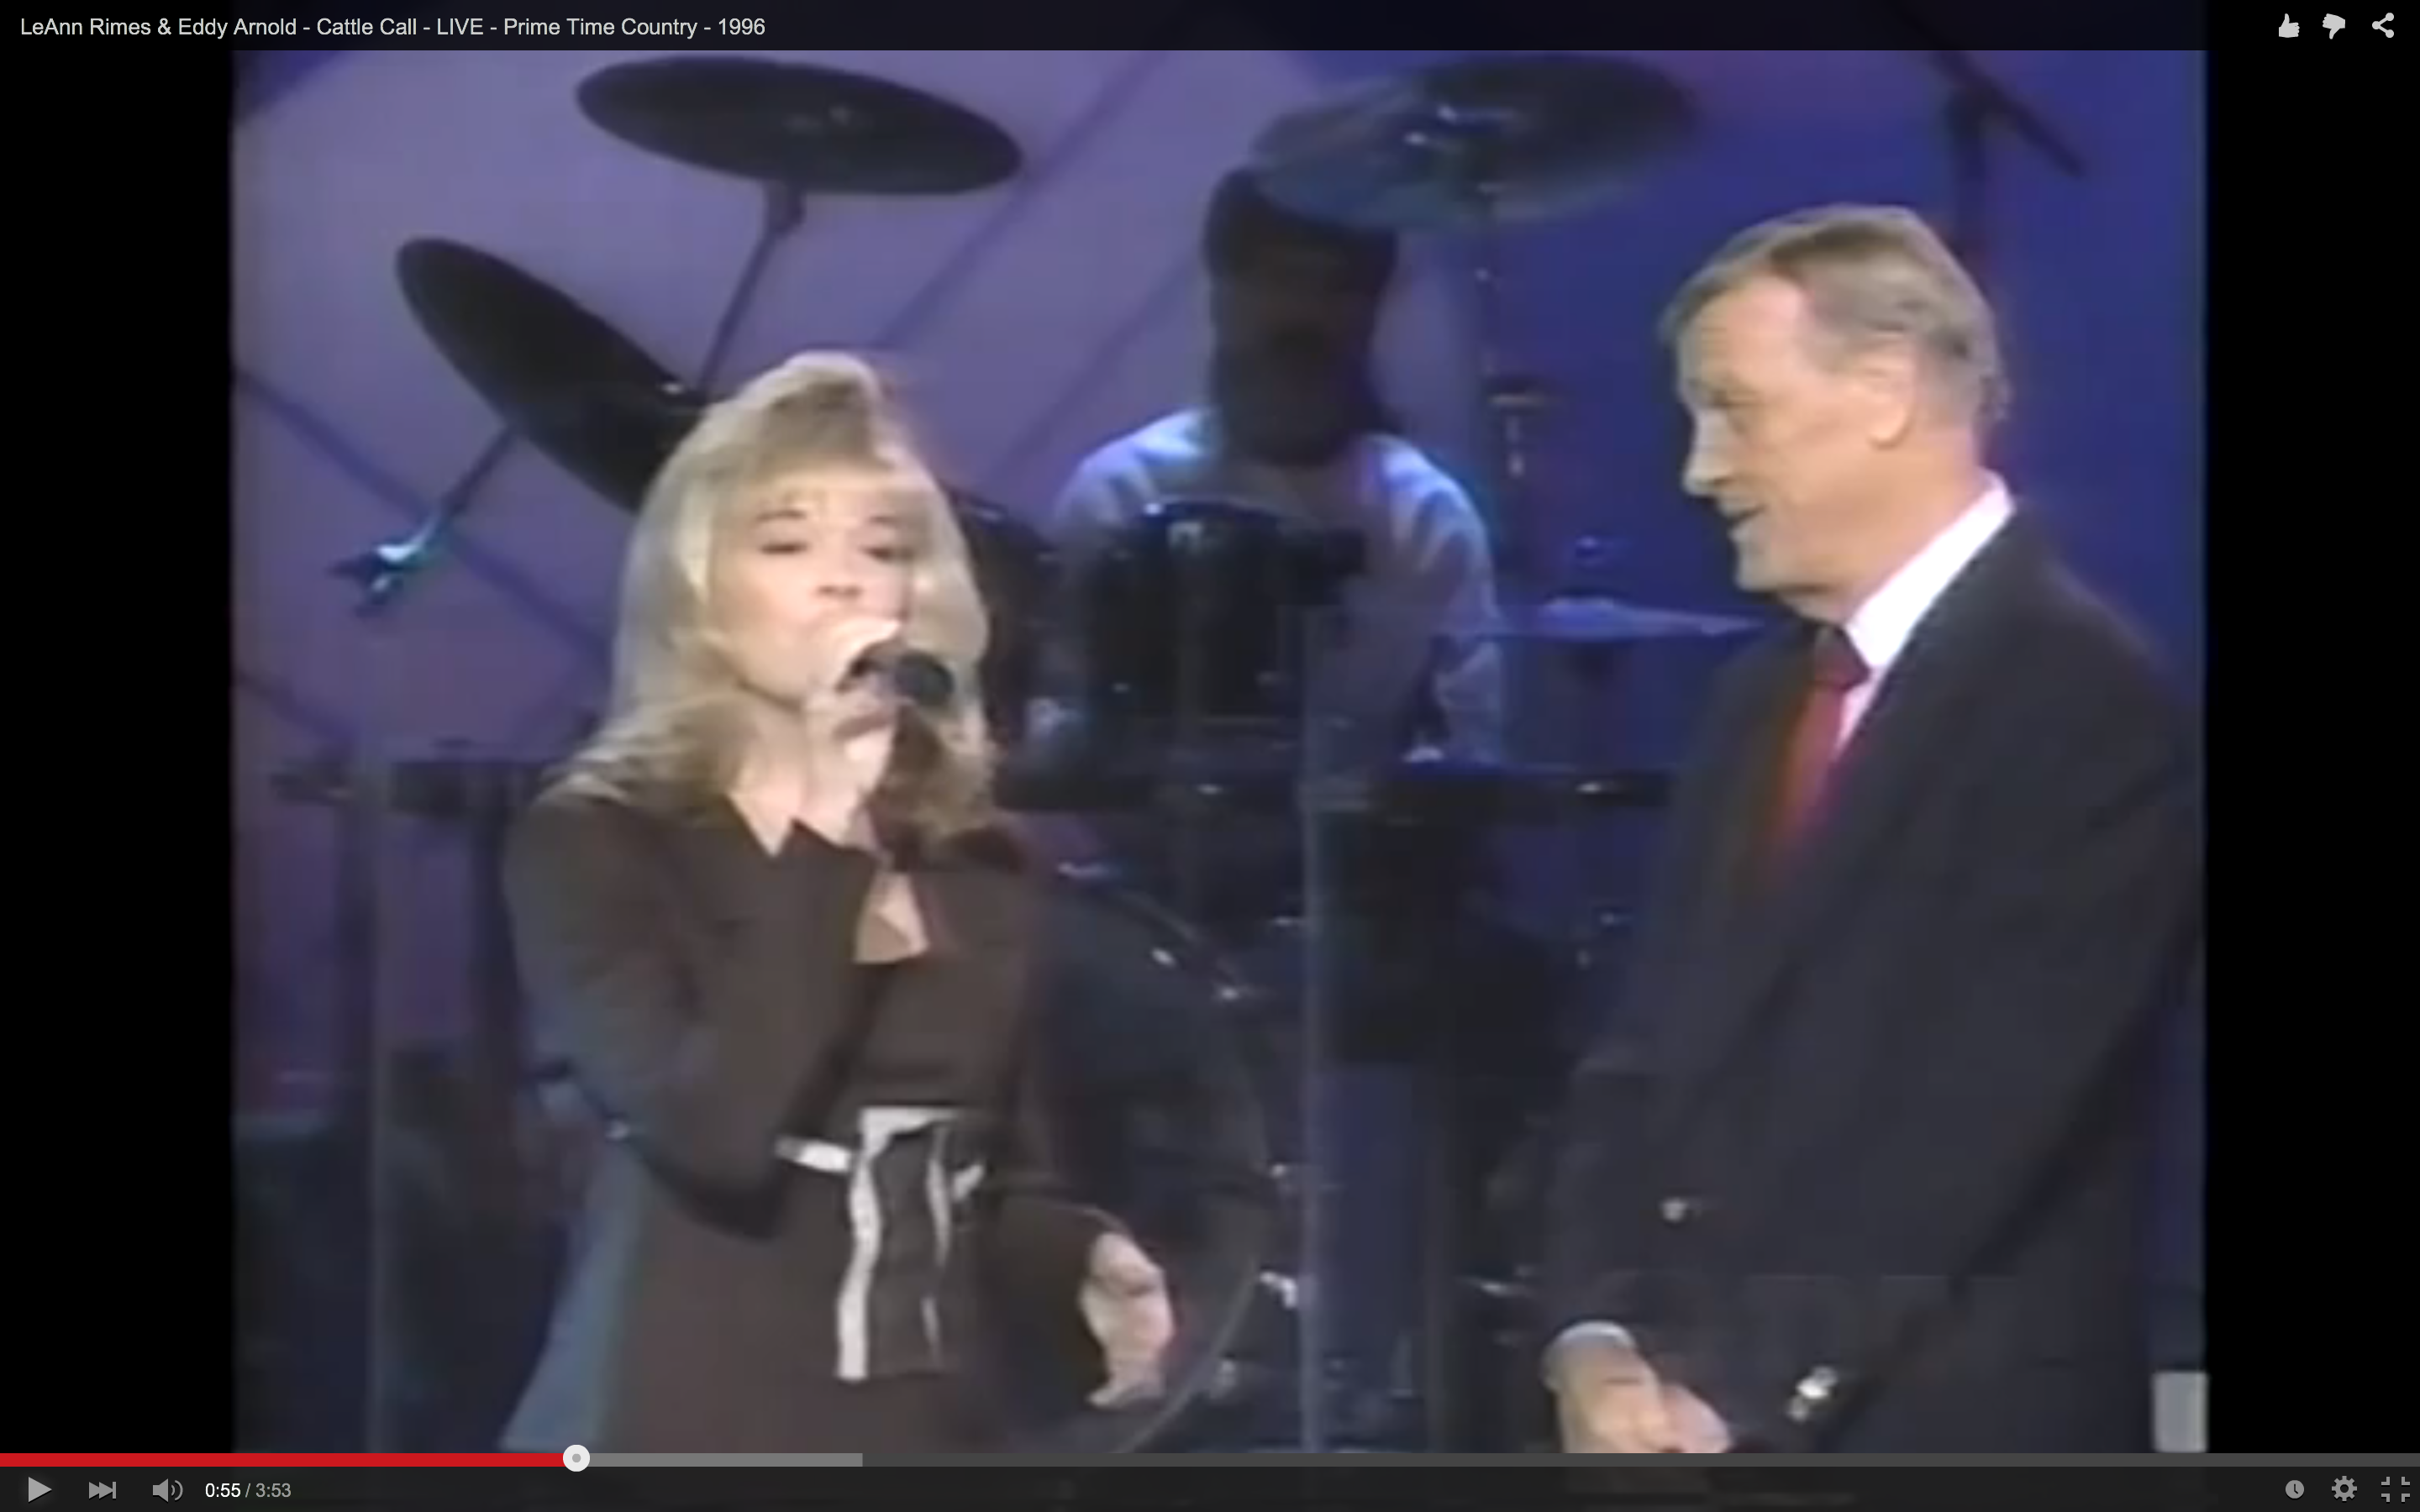 Flashback Eddy Arnold Joins Teen Leann Rimes In A Yodeling Match